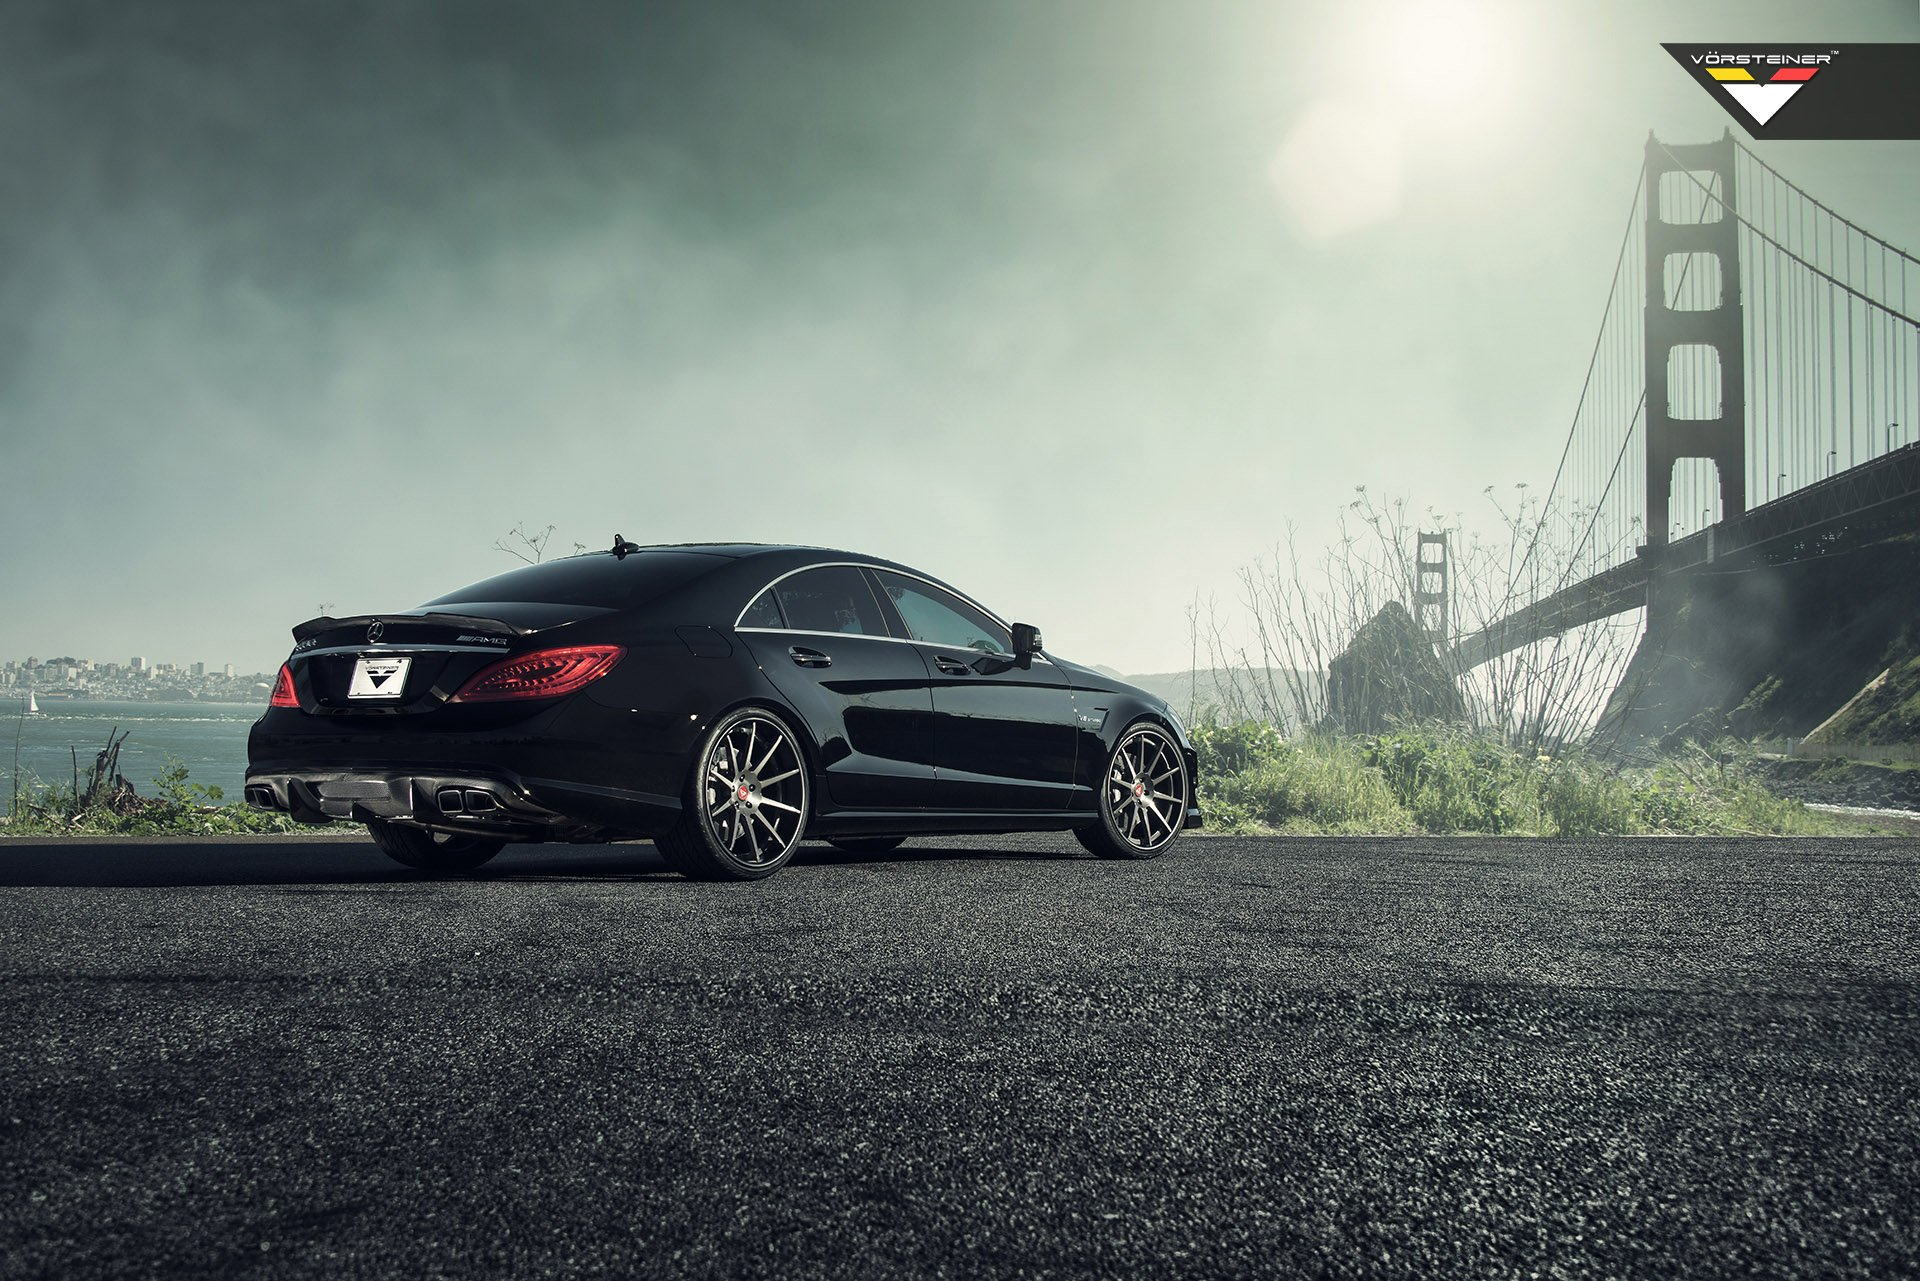 vorsteiner mercedes benz cls63 amg wheels tuning wallpaper. Black Bedroom Furniture Sets. Home Design Ideas